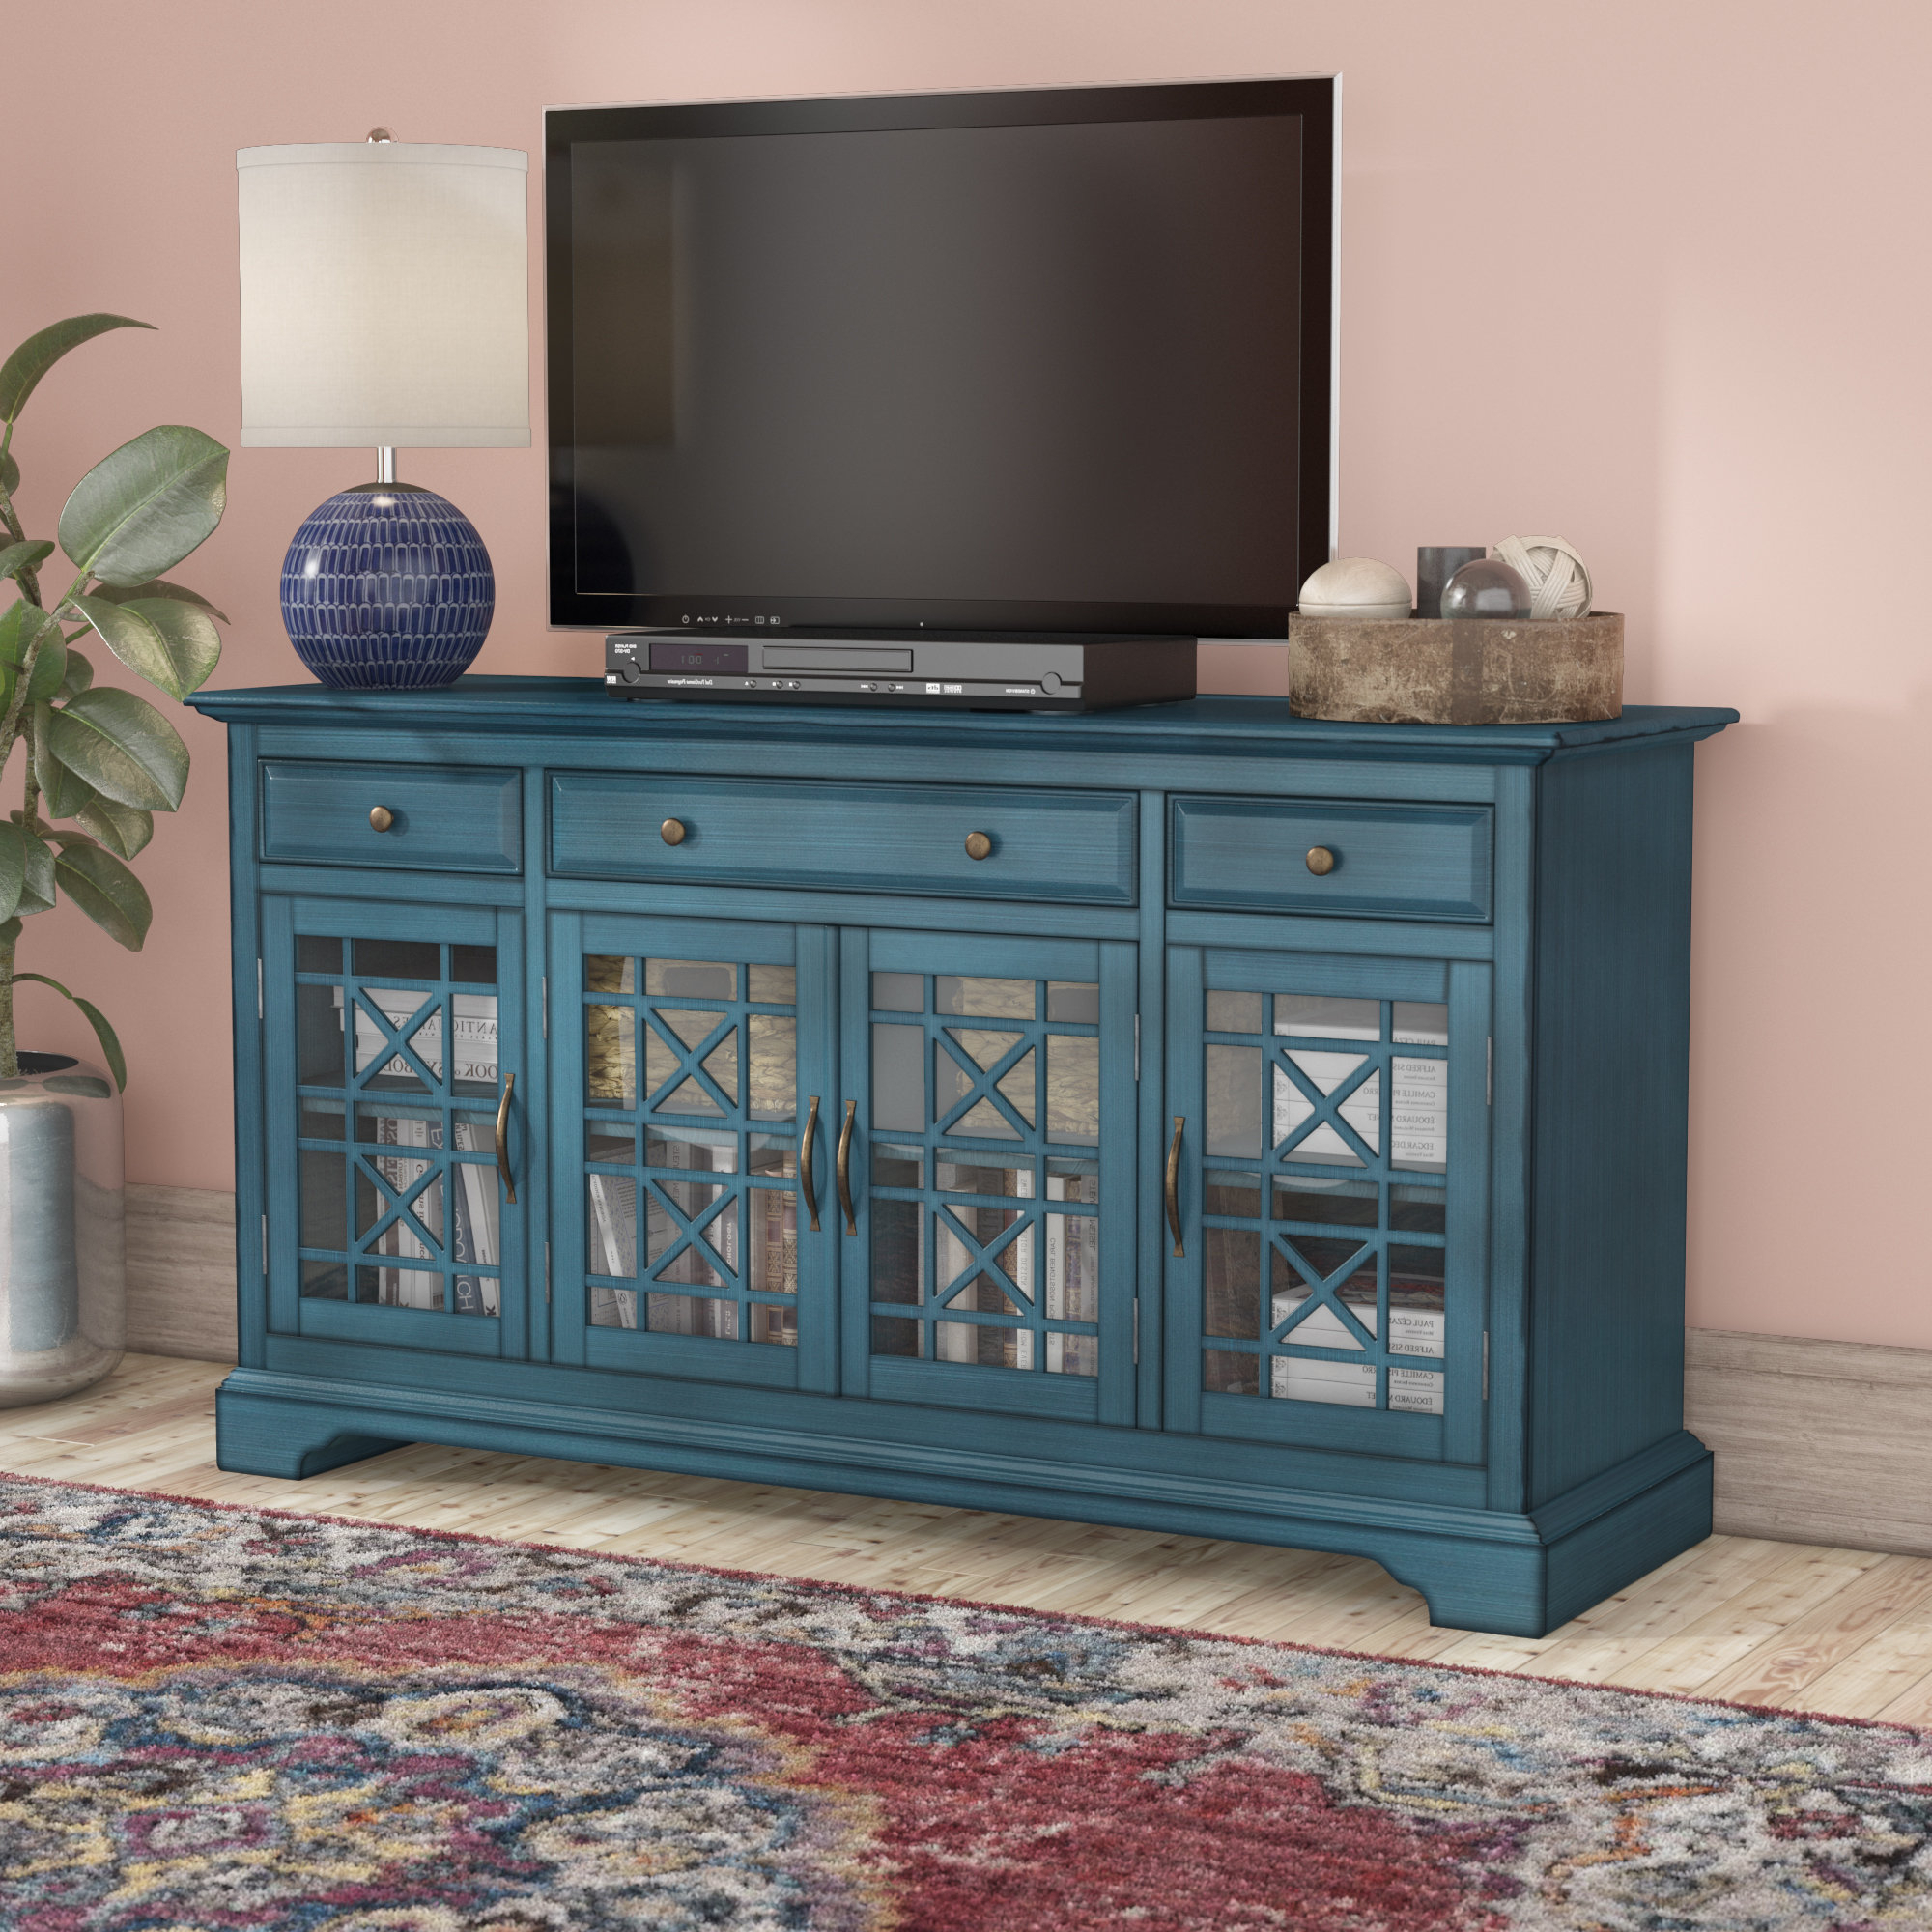 Joss & Main Throughout Trendy Combs 63 Inch Tv Stands (Gallery 10 of 20)